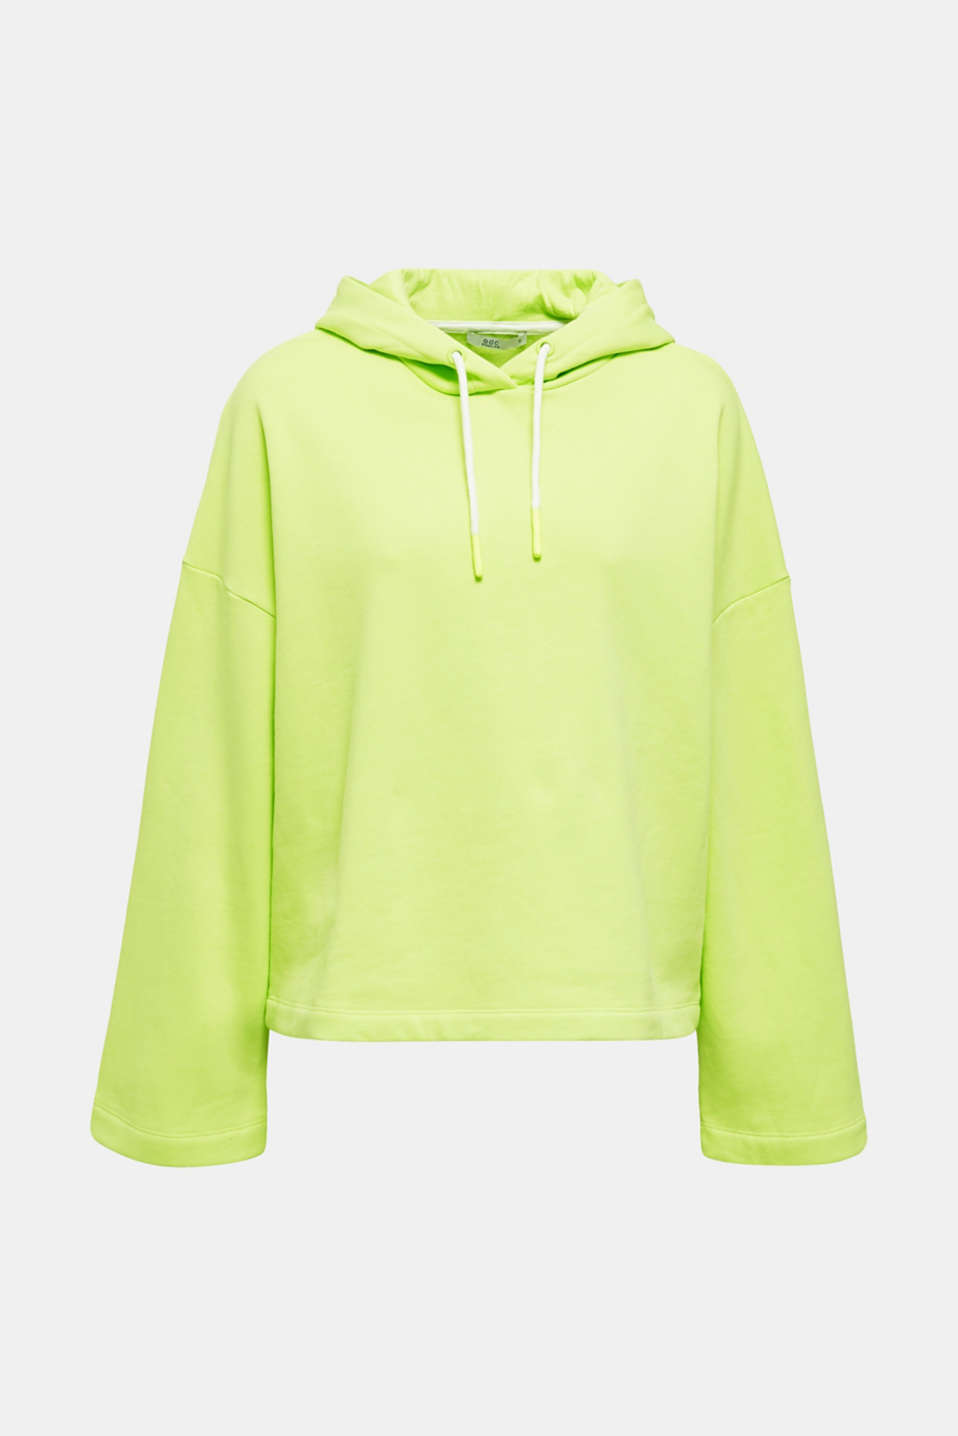 NEON boxy sweatshirt with a hood, 100% cotton, LIME YELLOW, detail image number 6